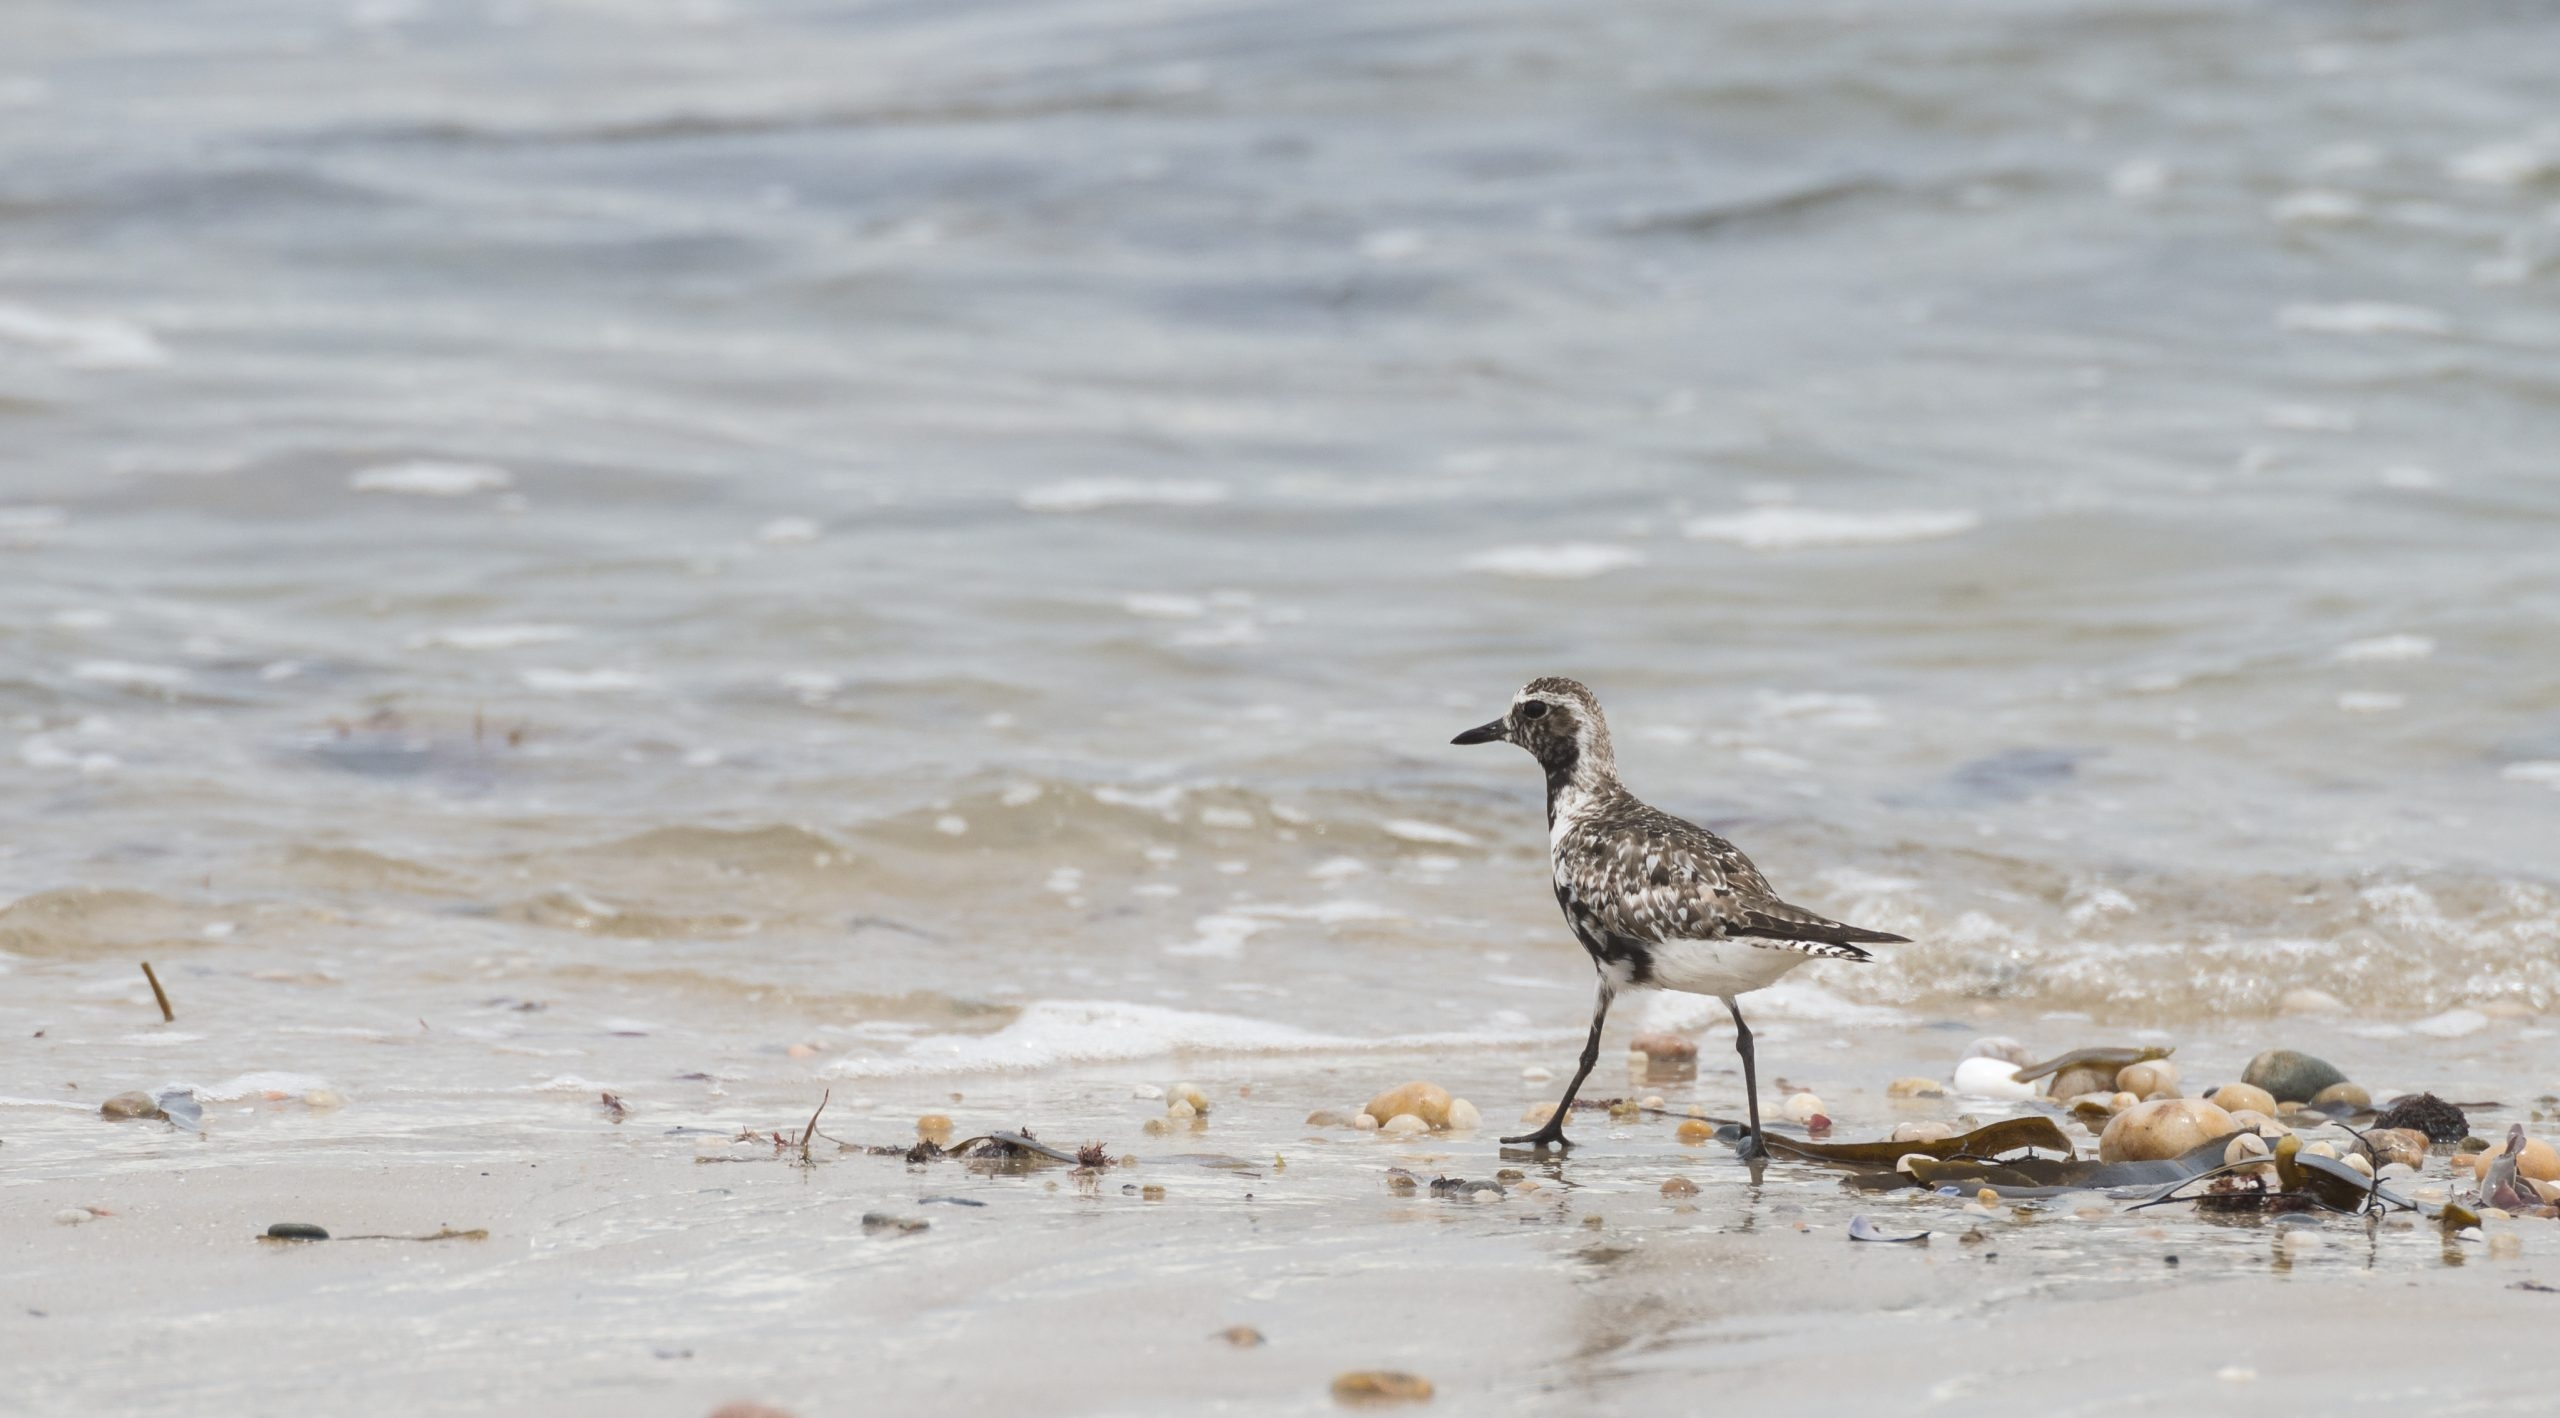 Our Namibia birding tours and desert birding day tours offer many bird species, such as the Grey Plover. Namibia offers easy birding and great bird photography opportunities